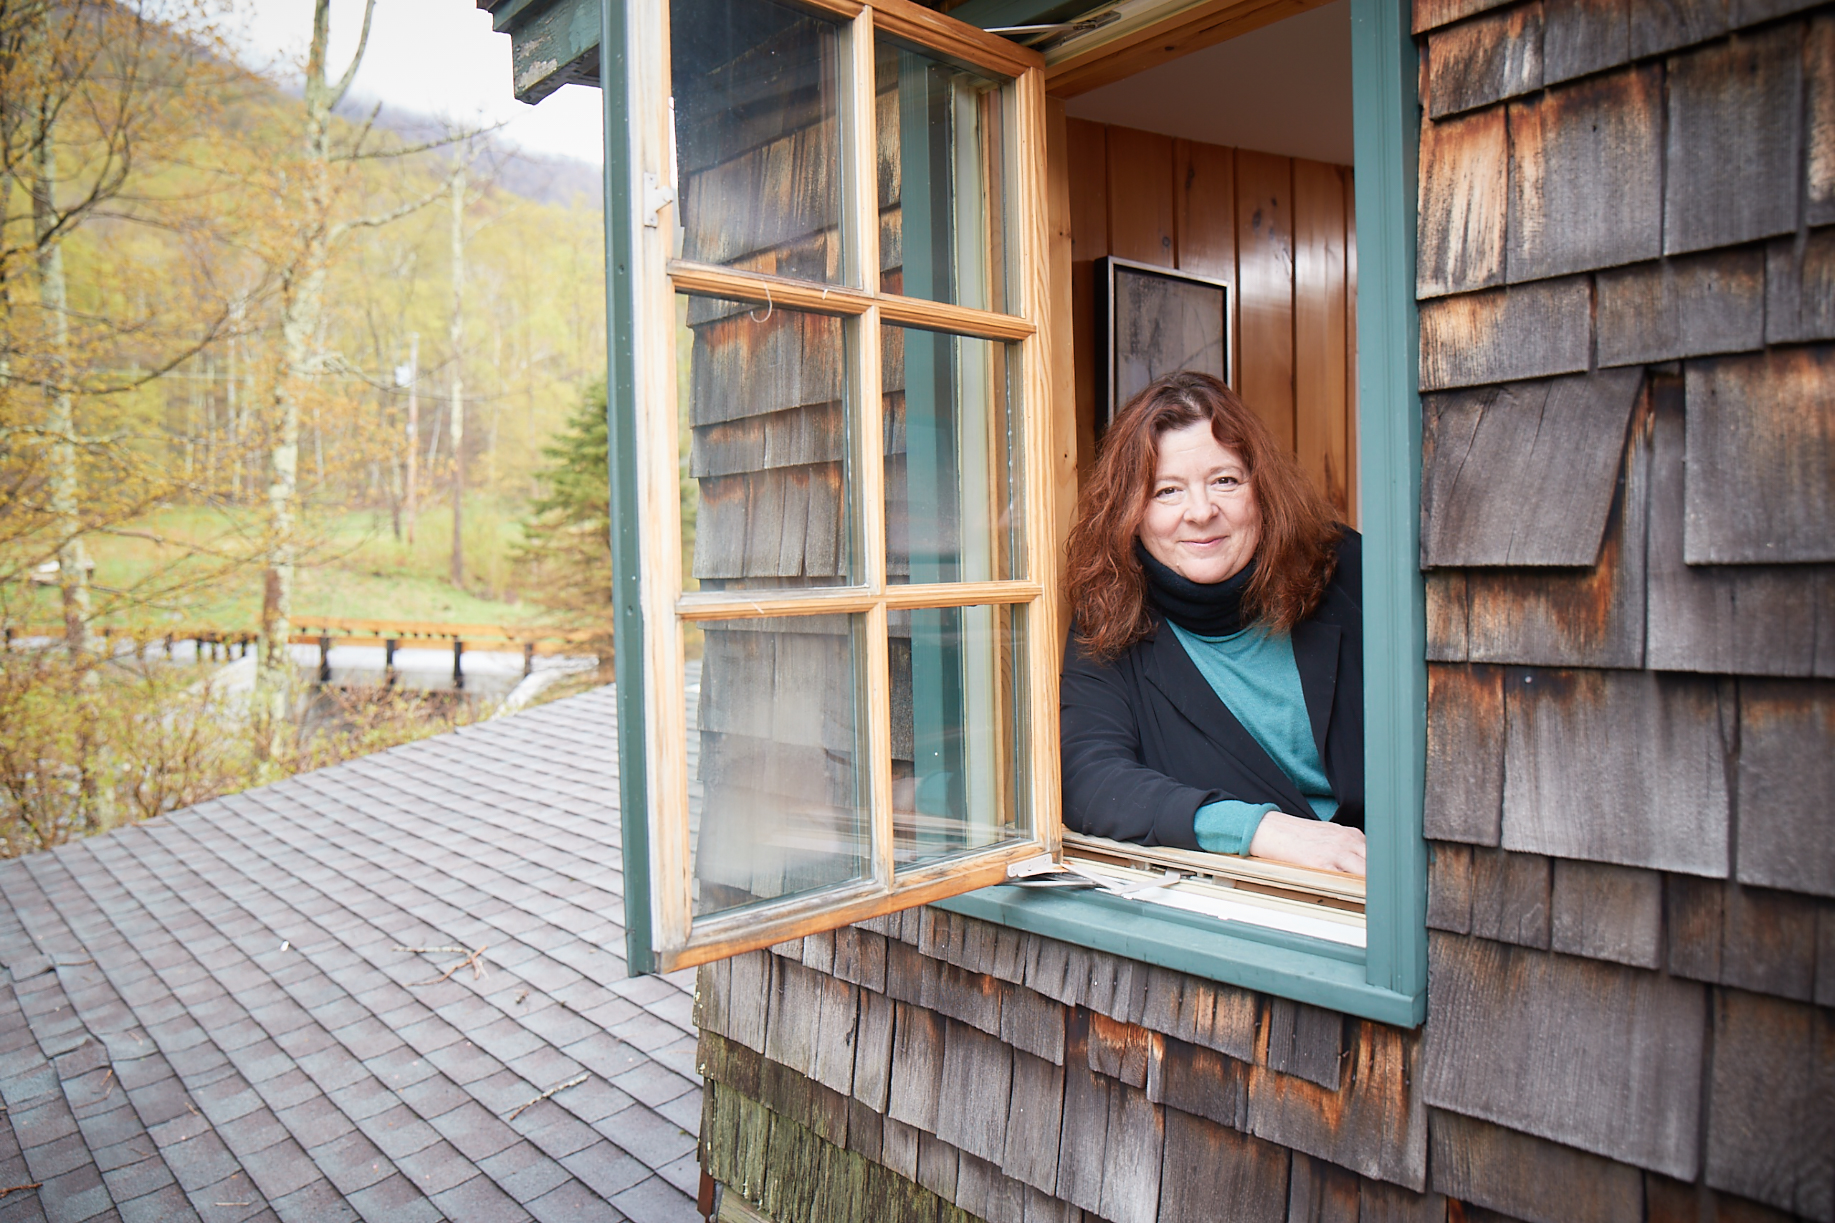 Photo of playwright Theresa Rebeck leaning out a window